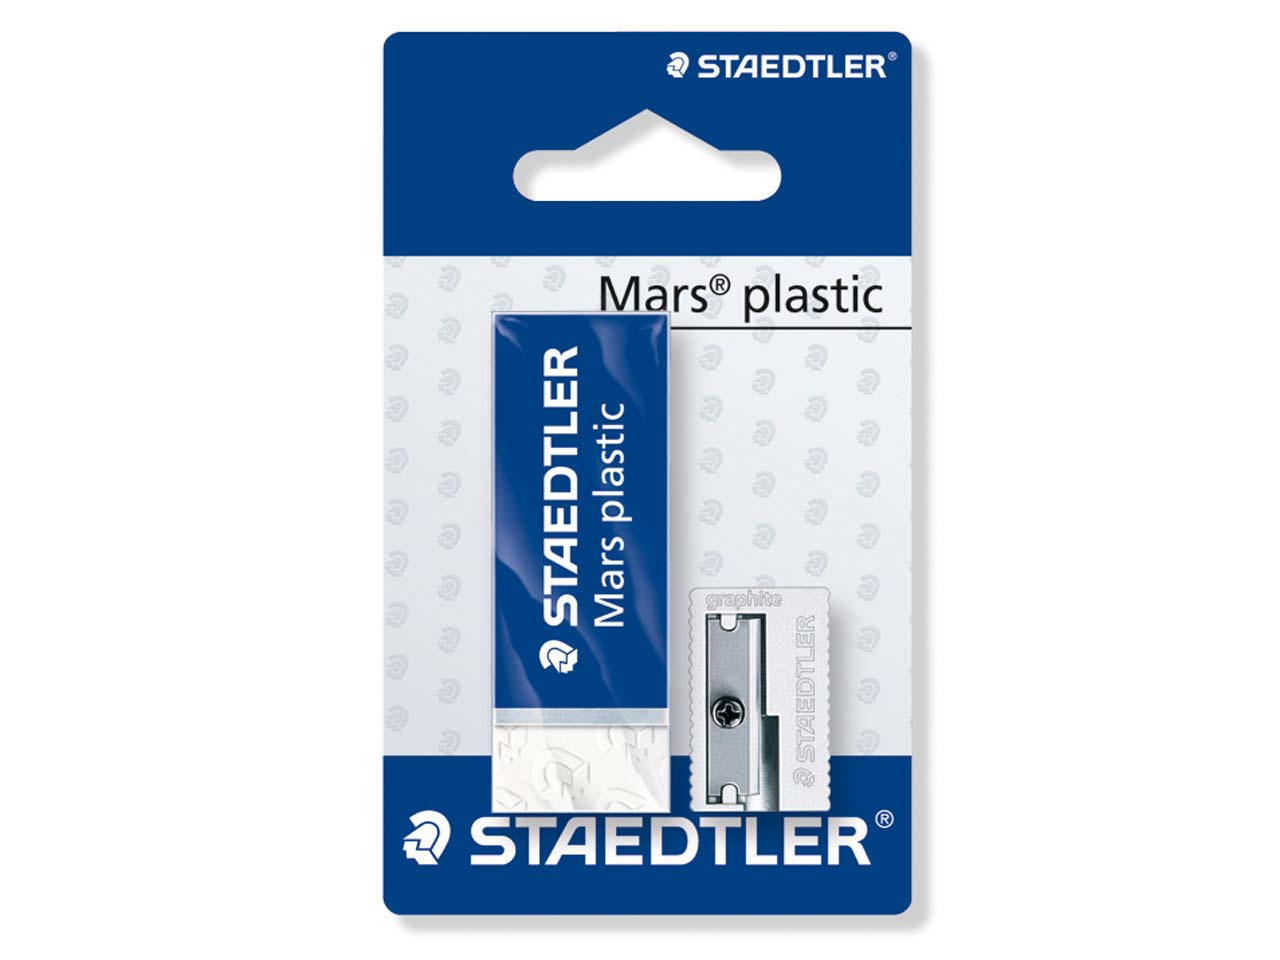 Staedtler Mars Plastic Eraser And  Sharpener Set